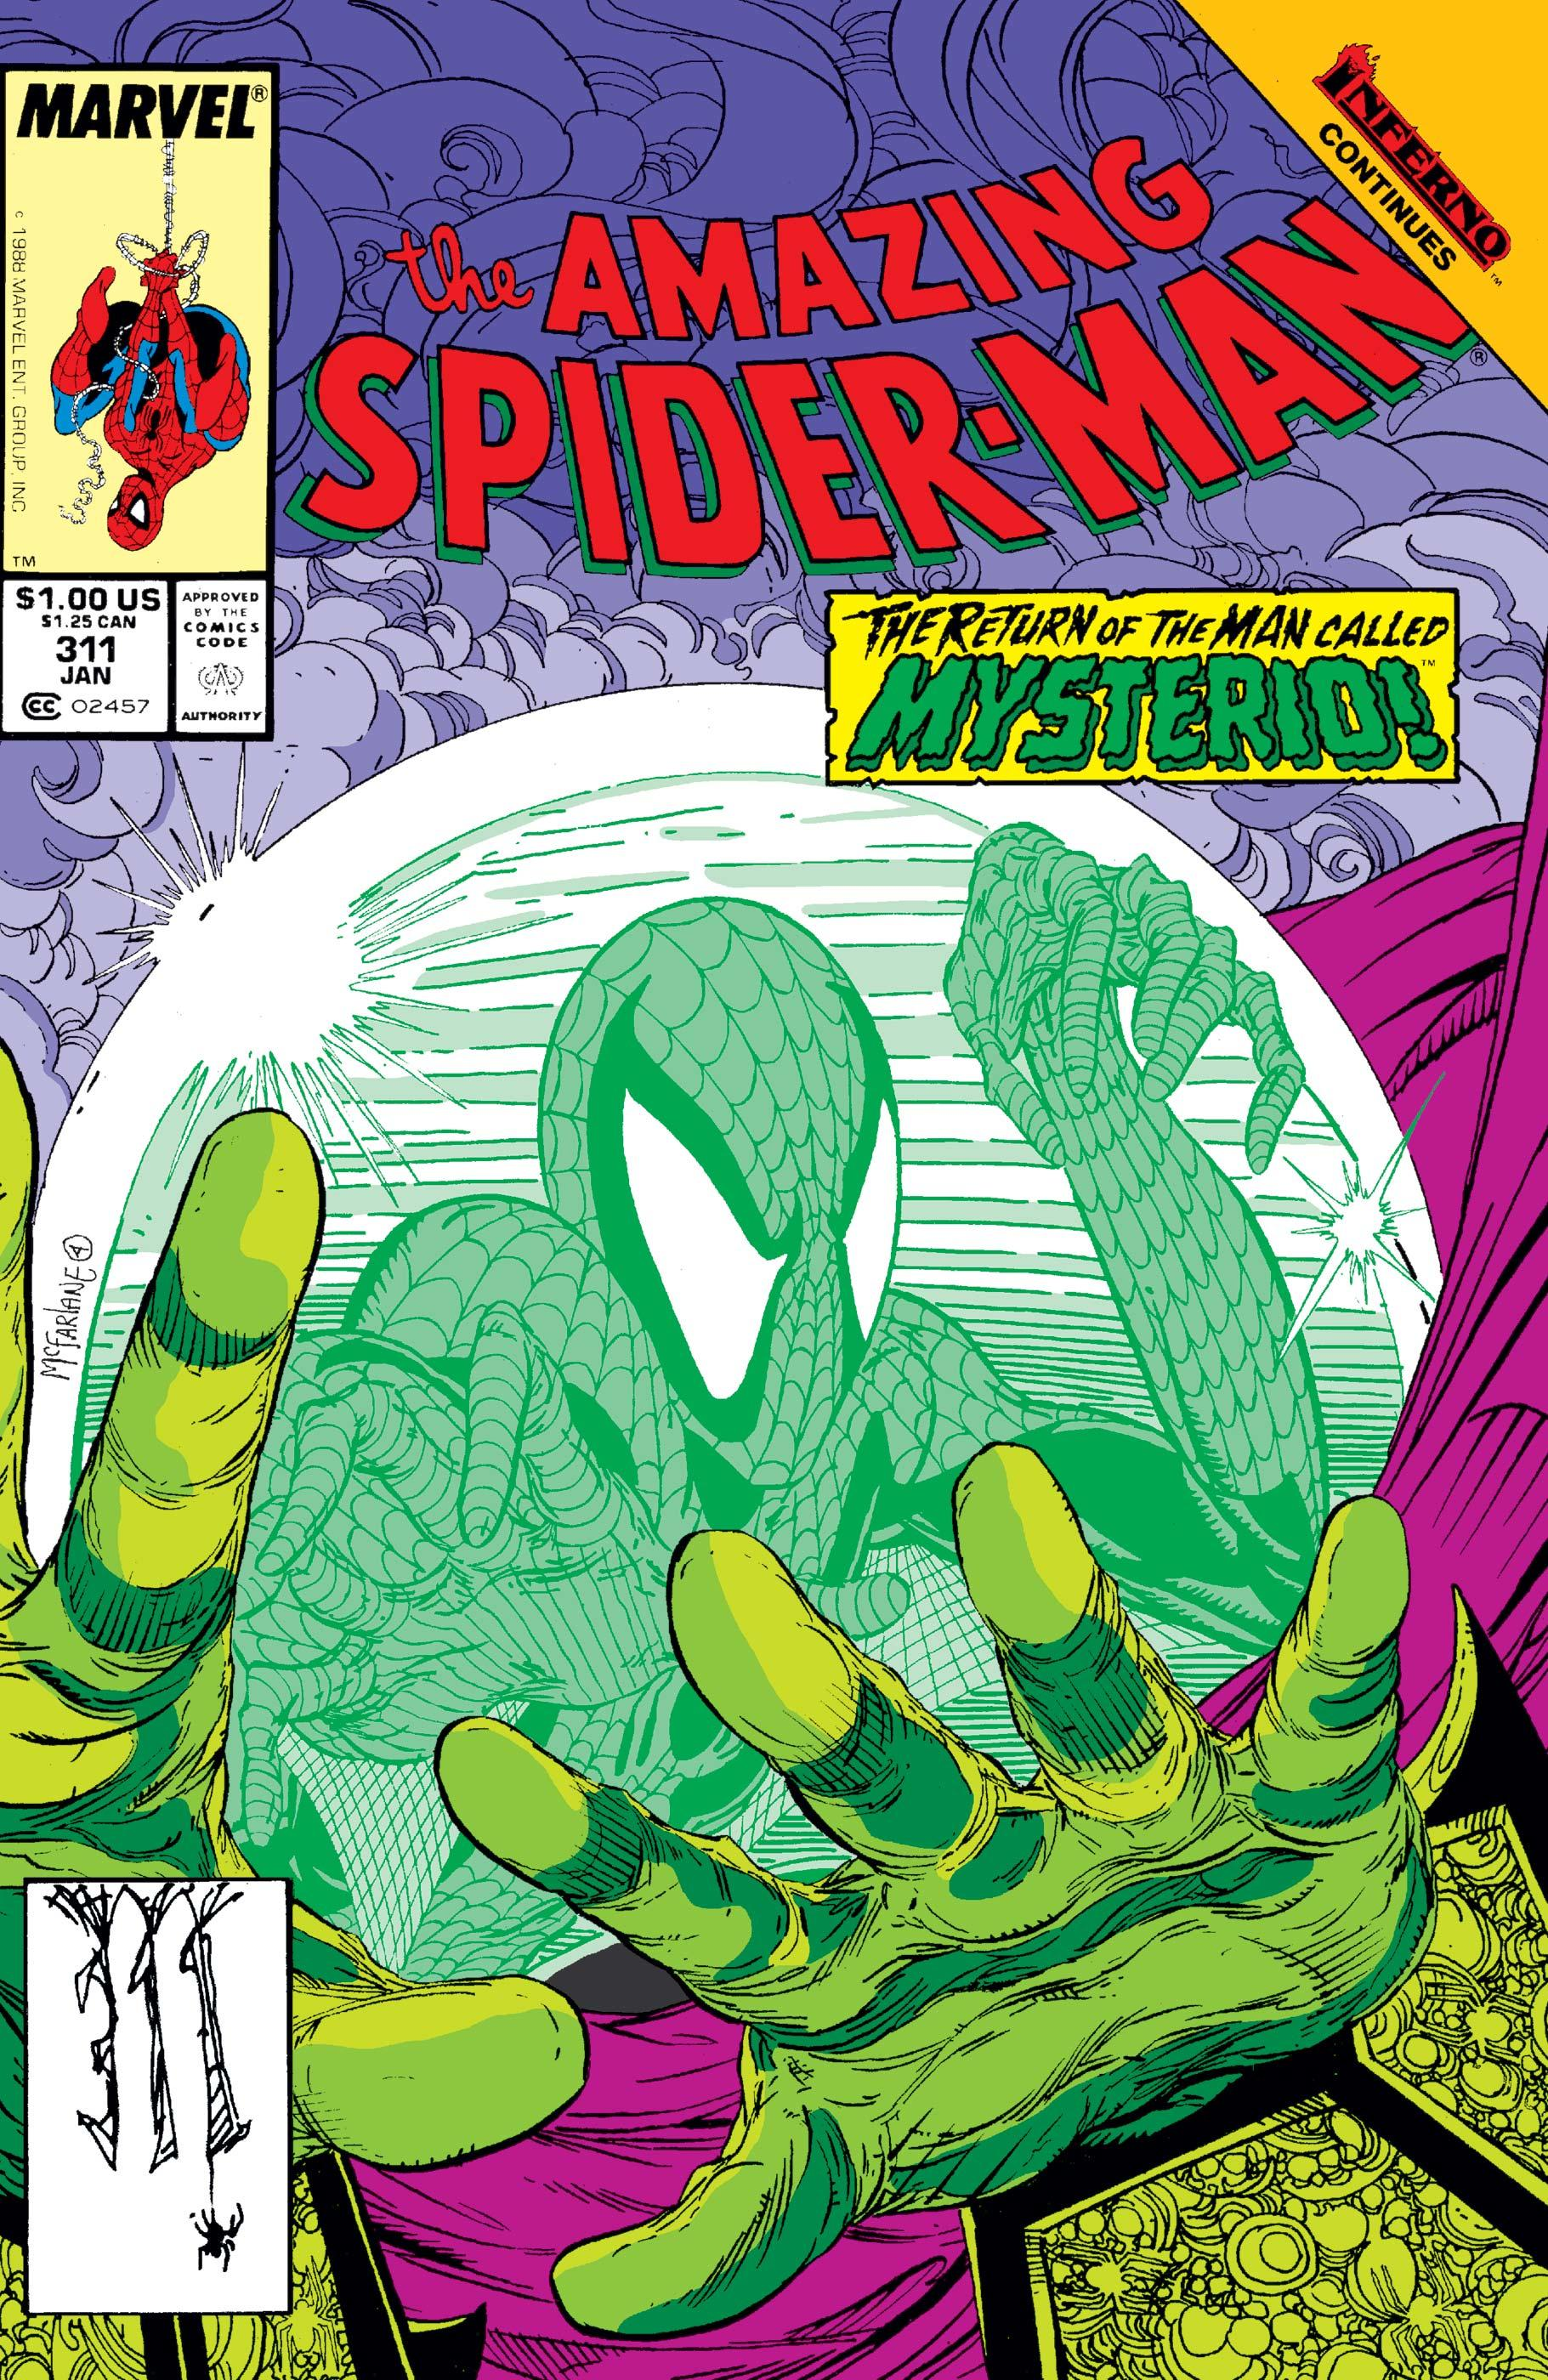 Summer 1989: Todd McFarlane was a good Spider-Man artist whose fast-growing popularity convinced him he could write, but he was wrong.